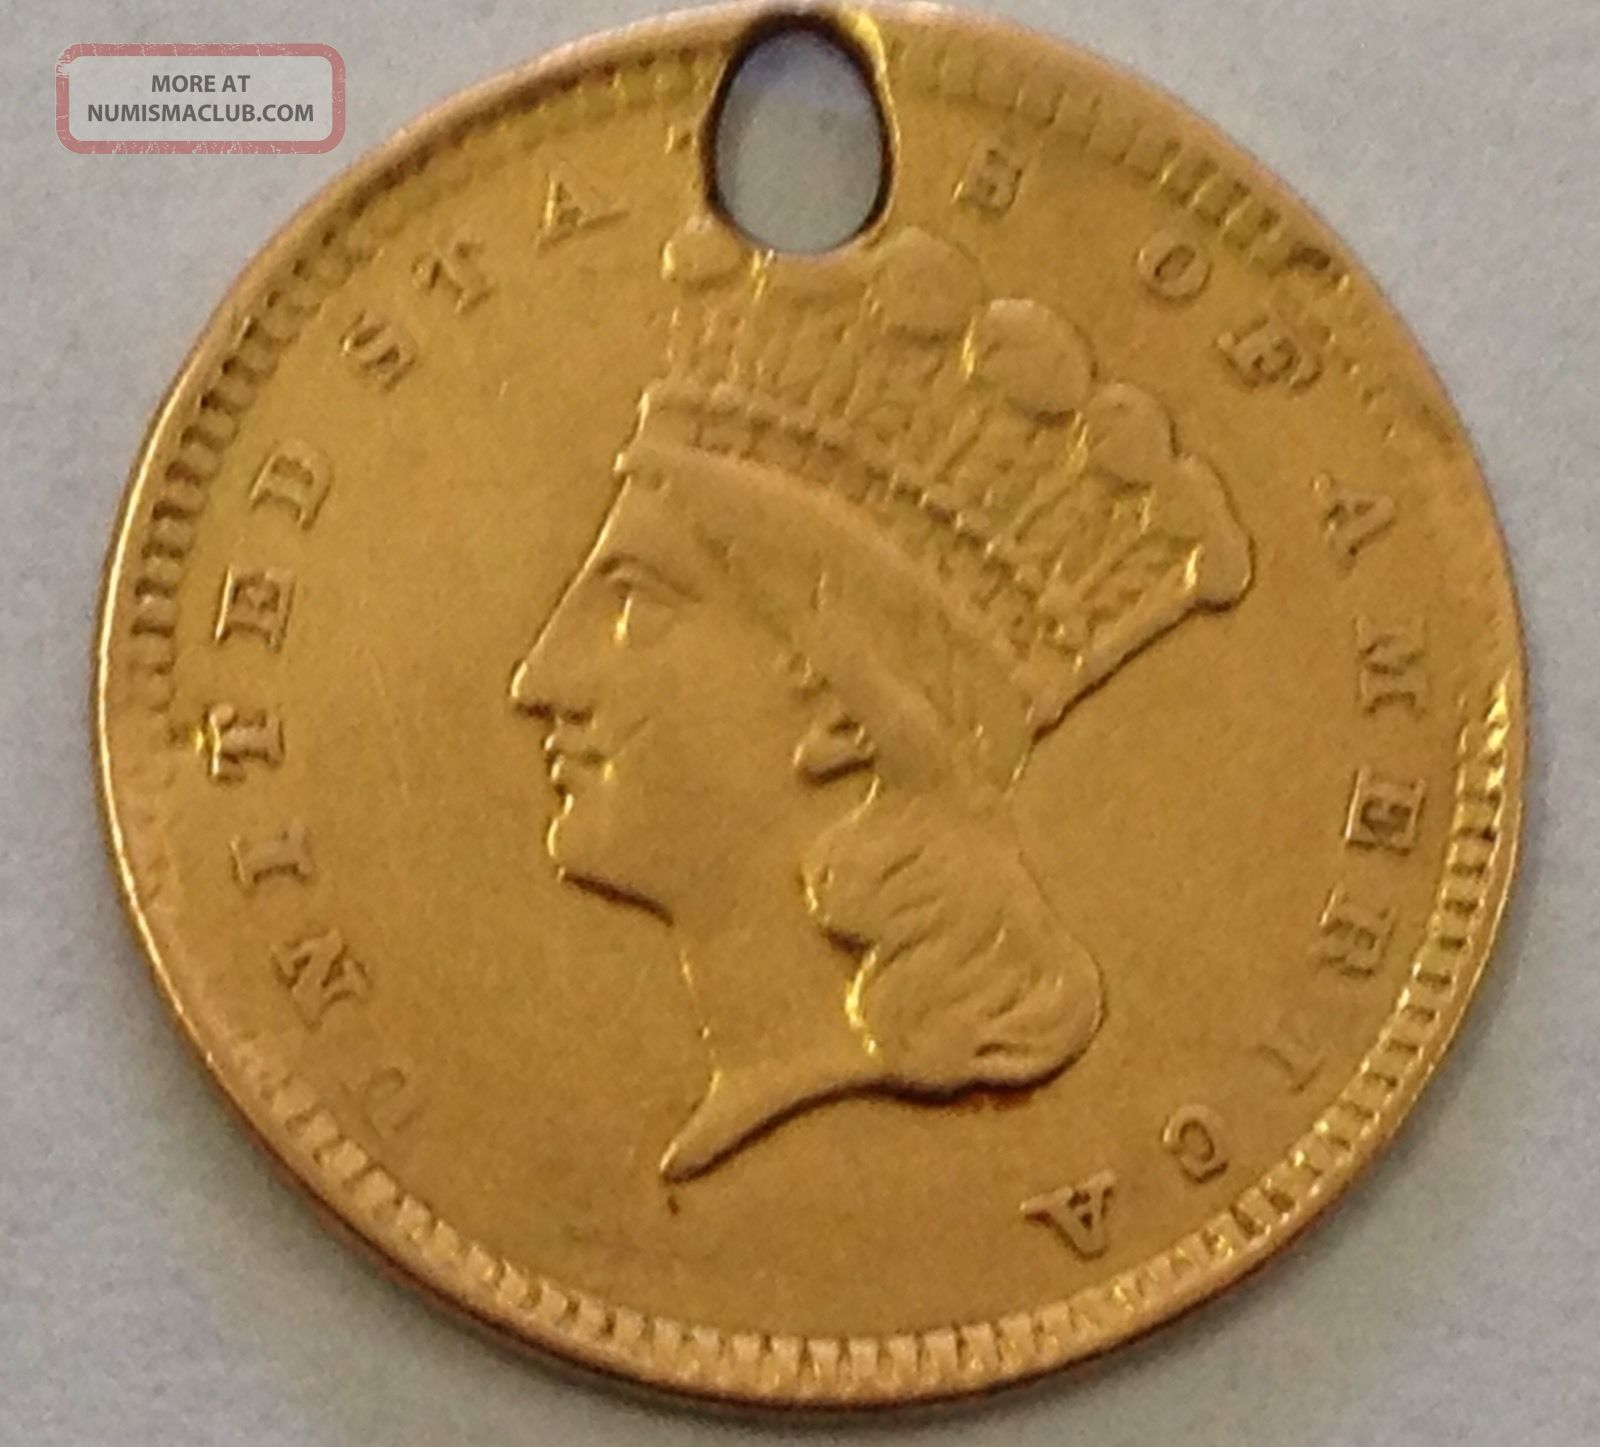 1857 One Dollar Gold Indian Princess Head Coin Ex Jewelry Low Opening Bid